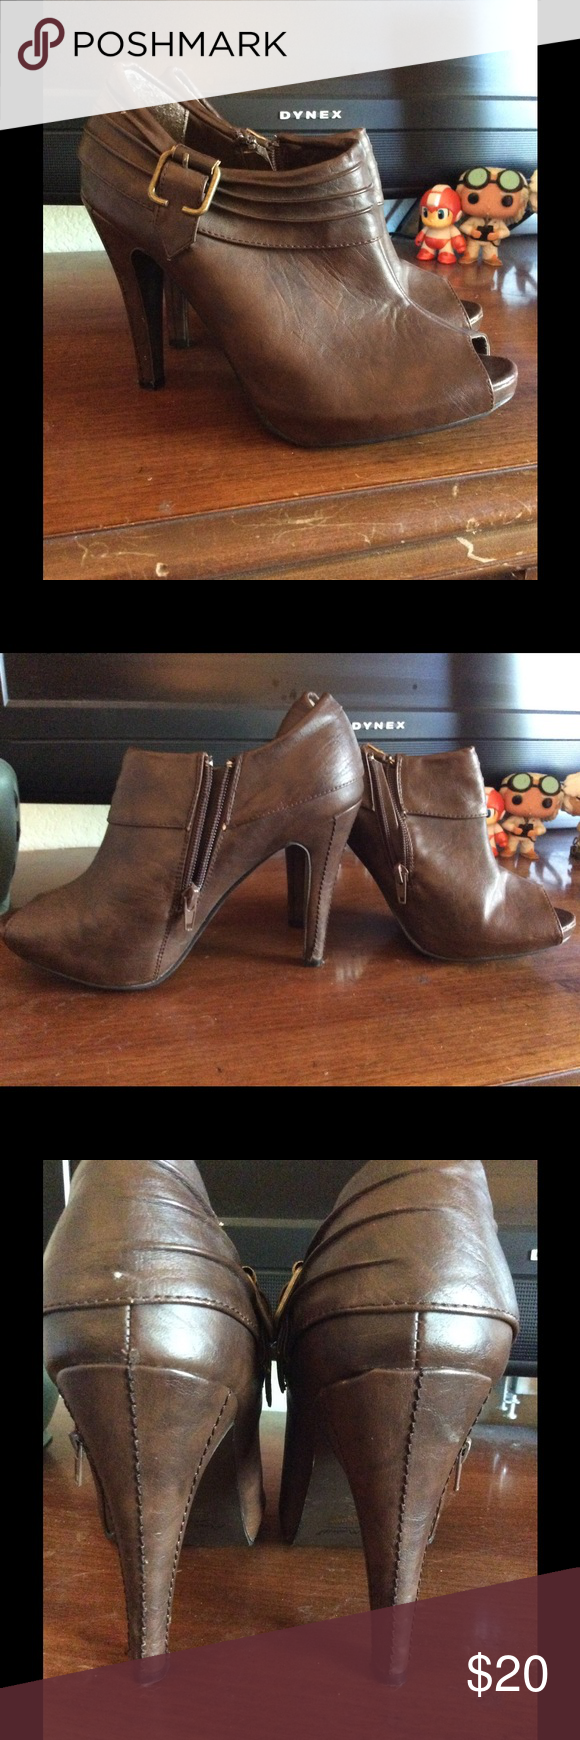 Anne Michelle Booties Super cute and comfy Anne Michelle booties. I think these are really easy to walk in, as you can see they have been worn, but are still in great condition. Don't hesitate to make me an offer! Anne Michelle Shoes Ankle Boots & Booties